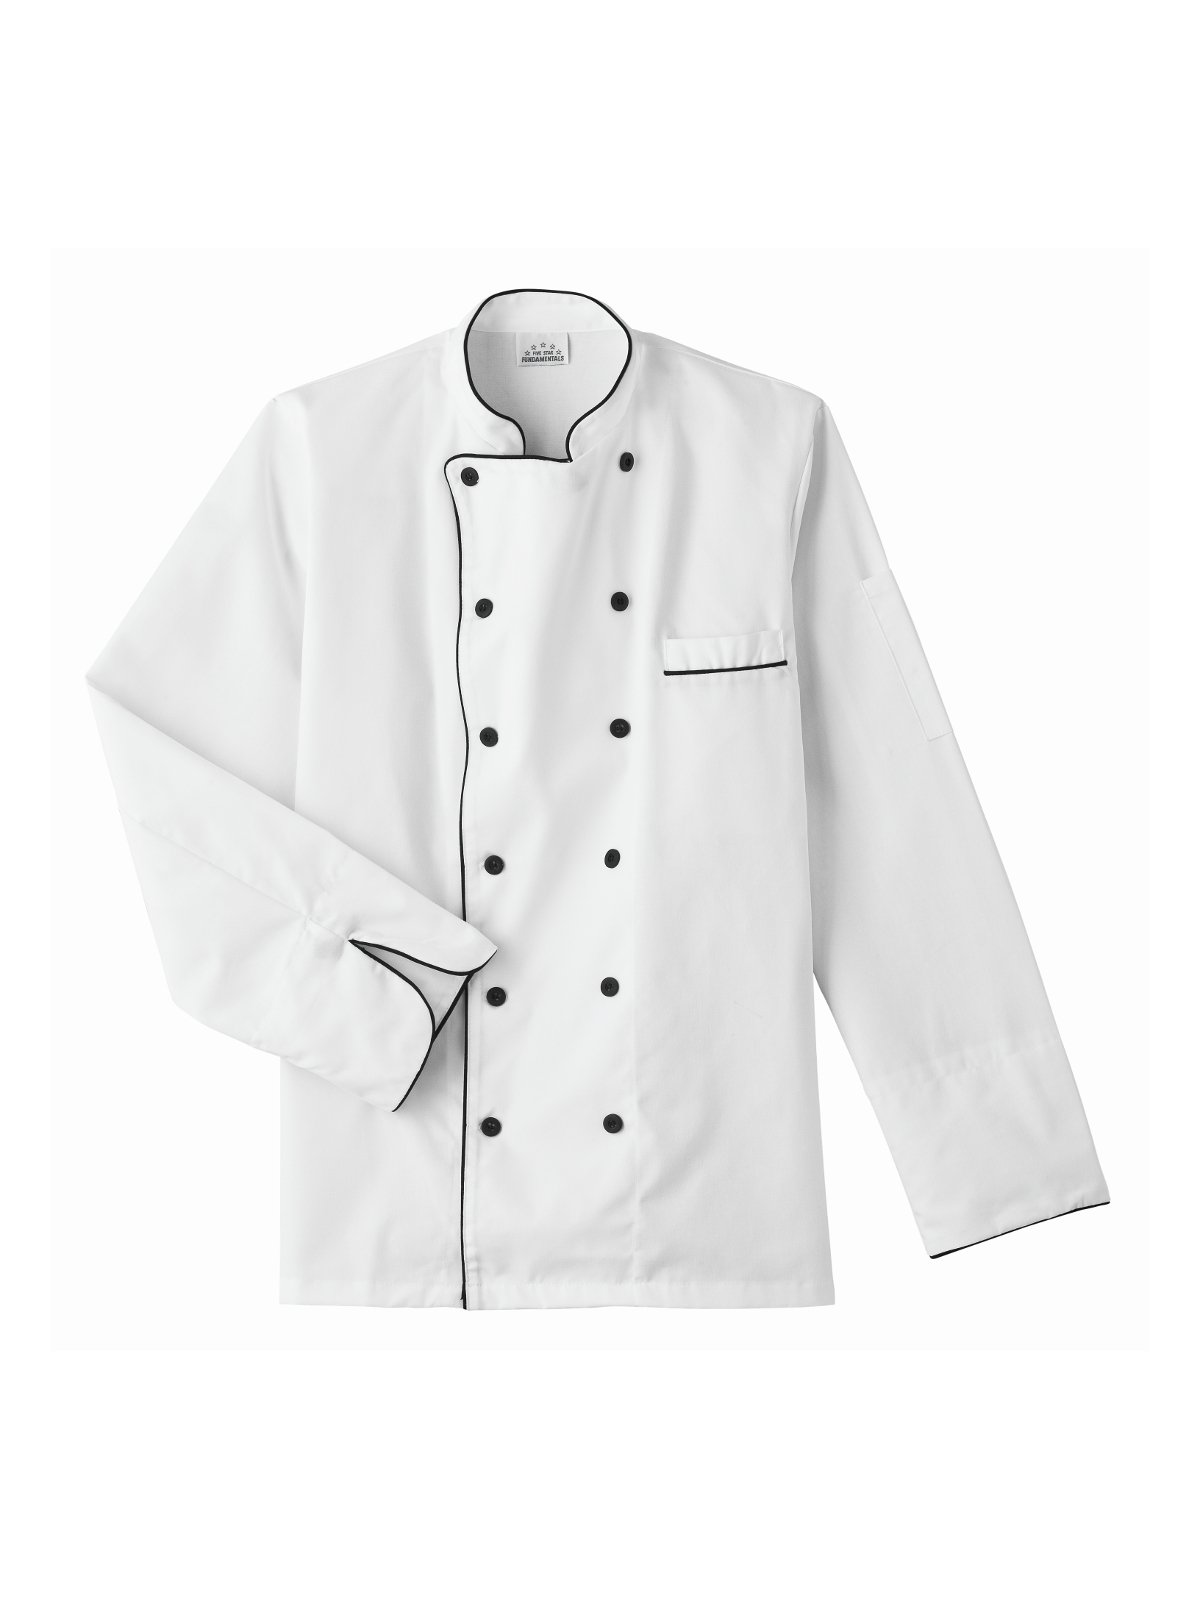 Five Star Chef Apparel Executive Jacket with Black Trim (White, Small)